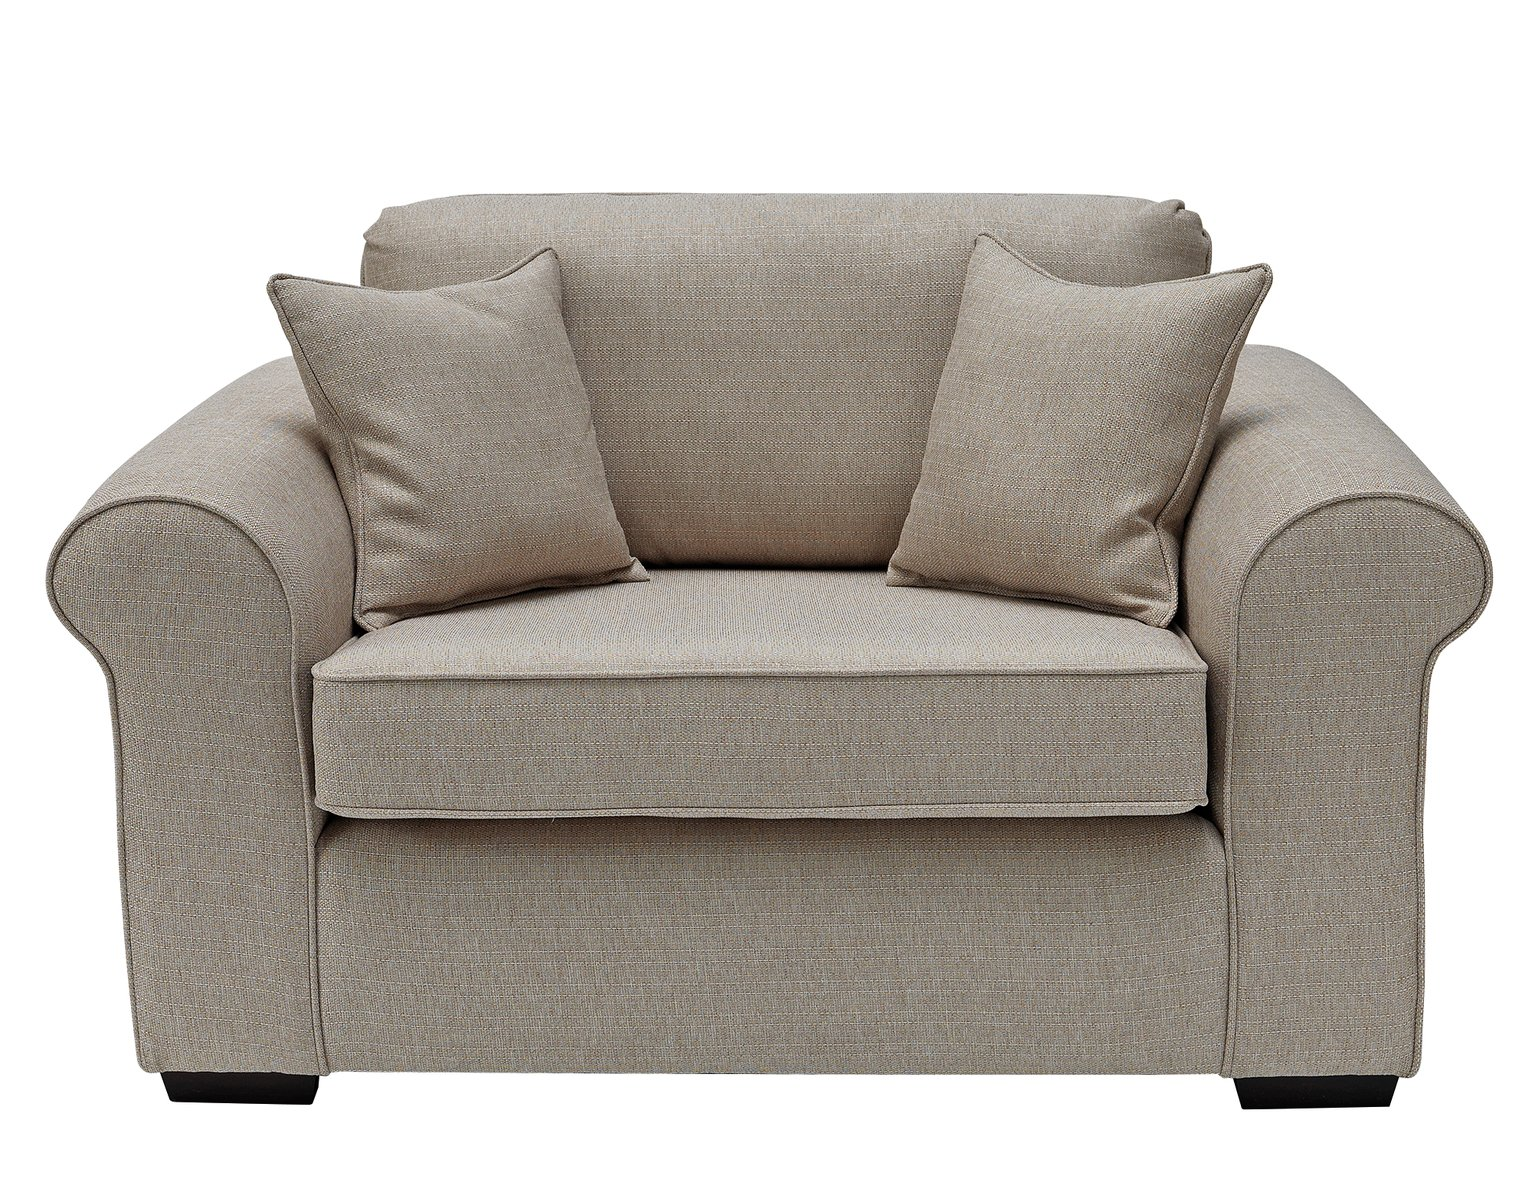 Collection Erinne Fabric Cuddle Chair - Natural